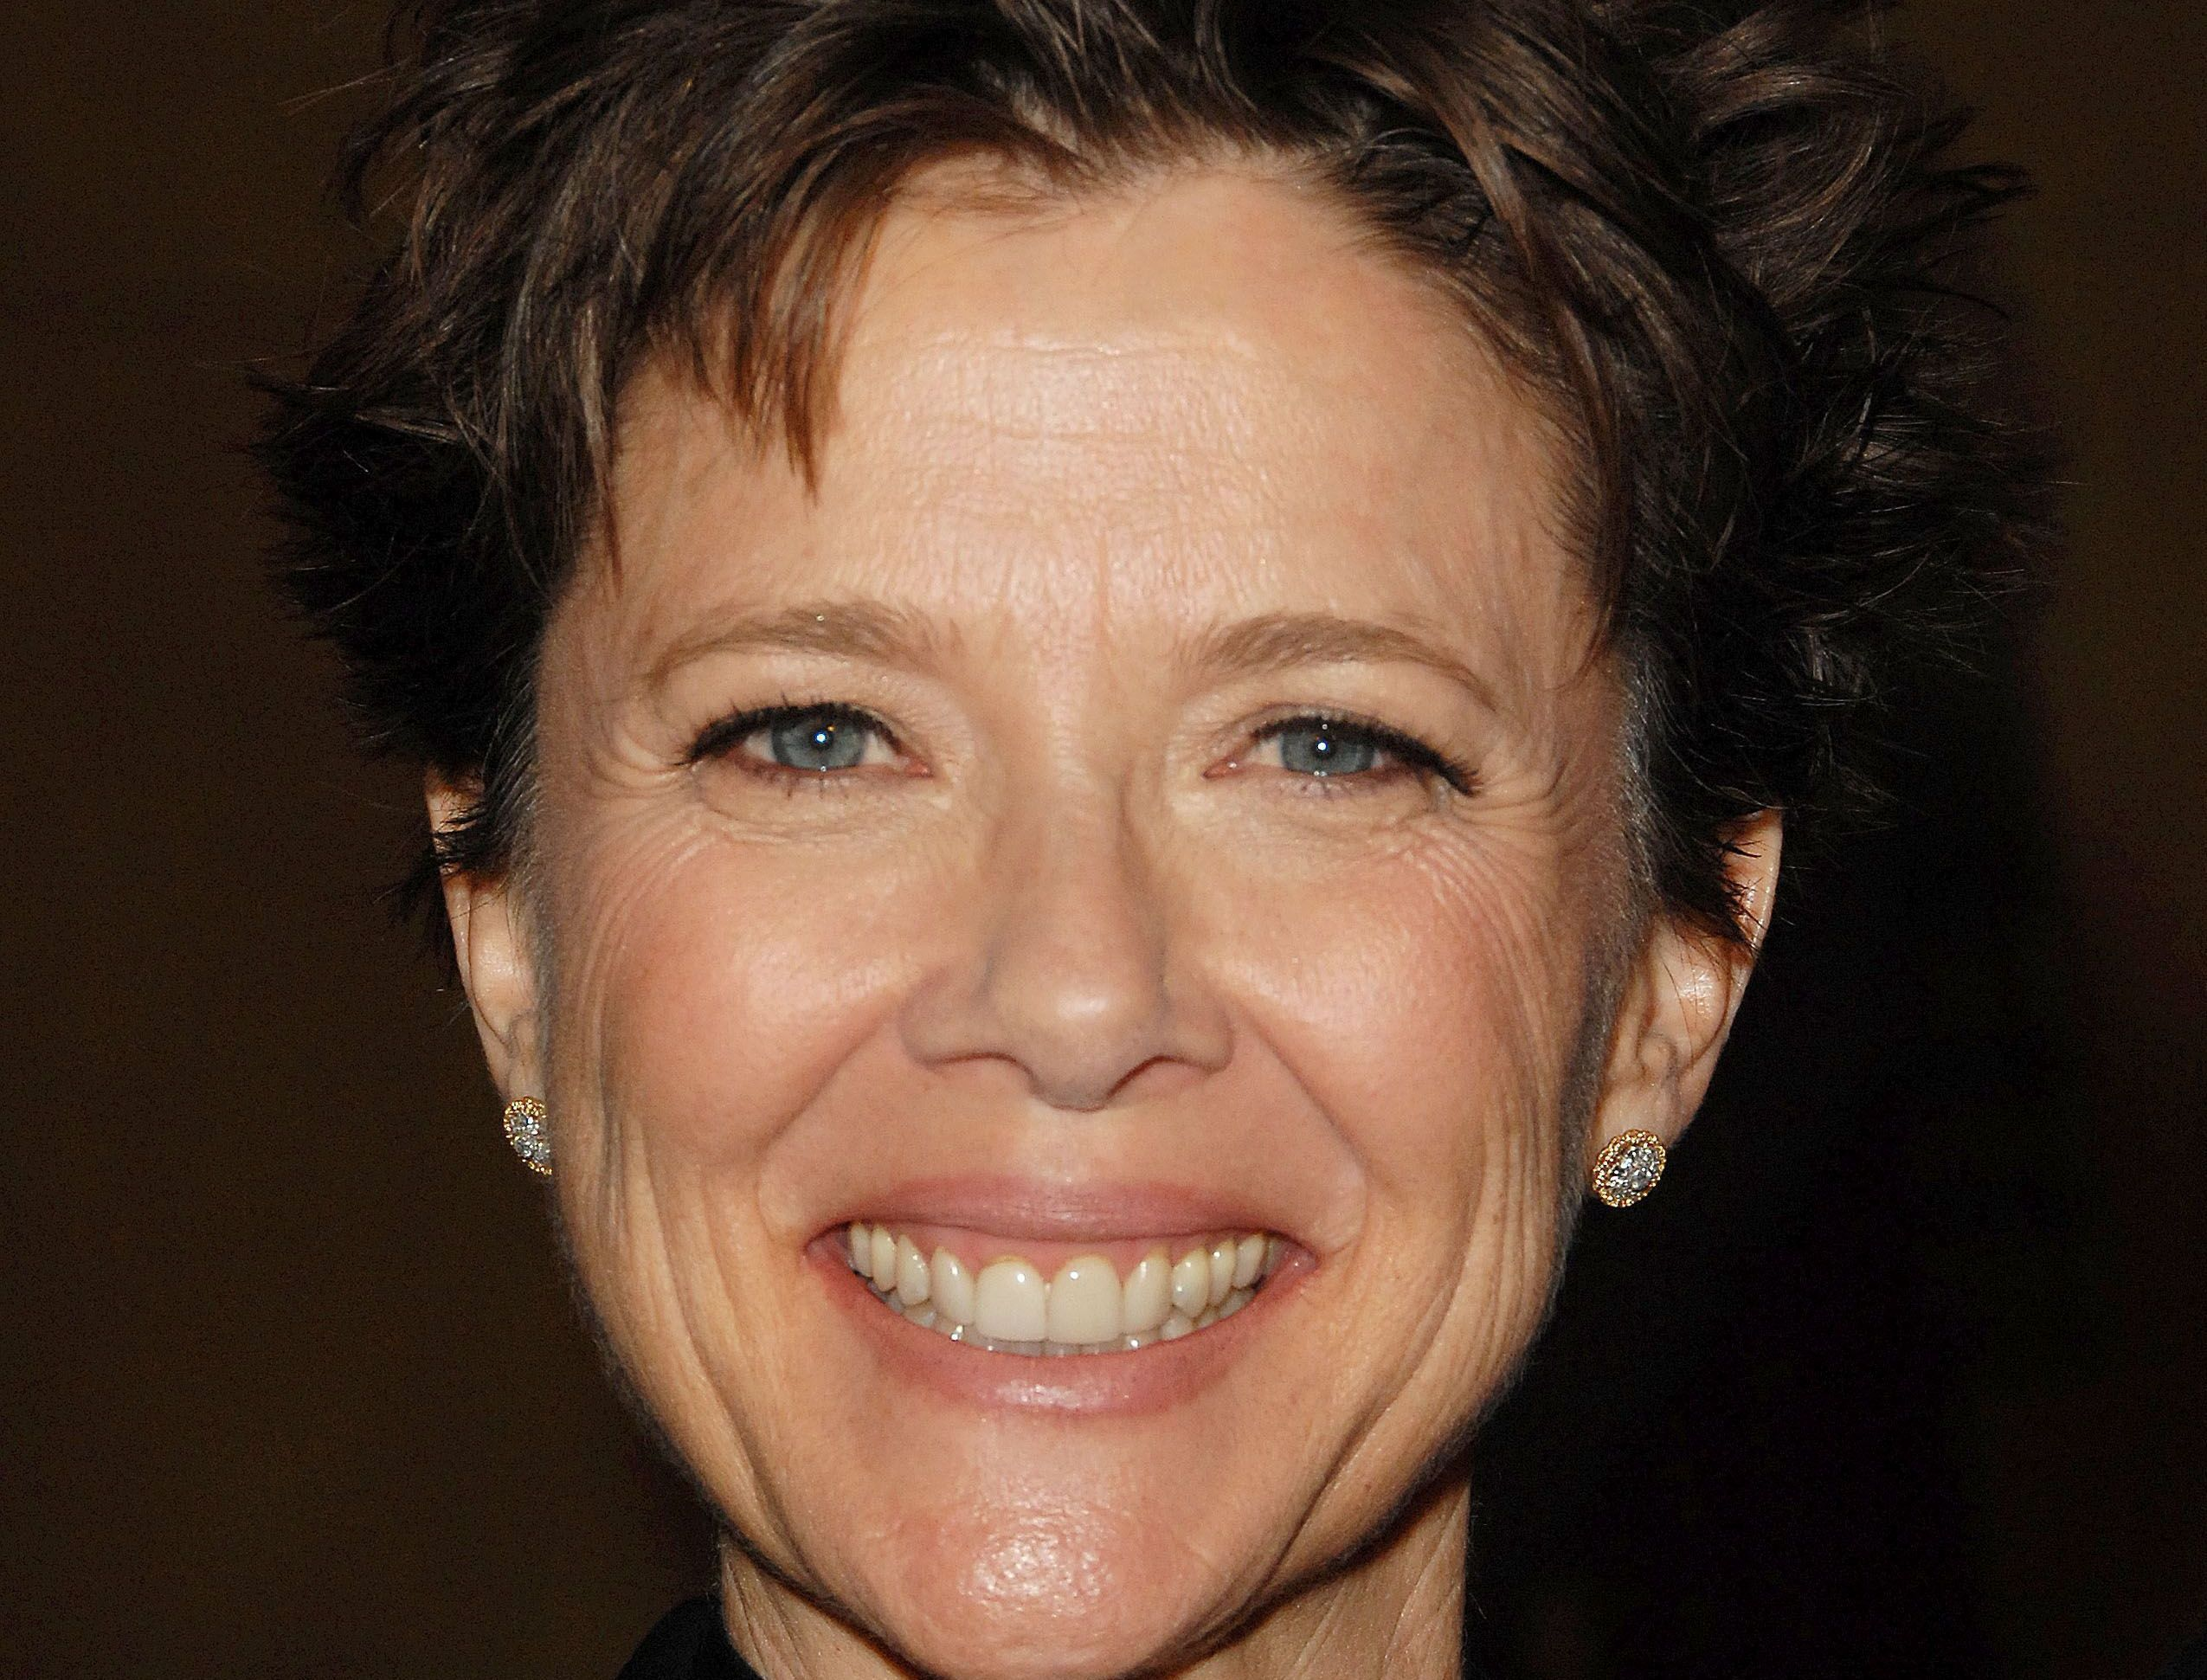 annette bening wallpaper - photo #23